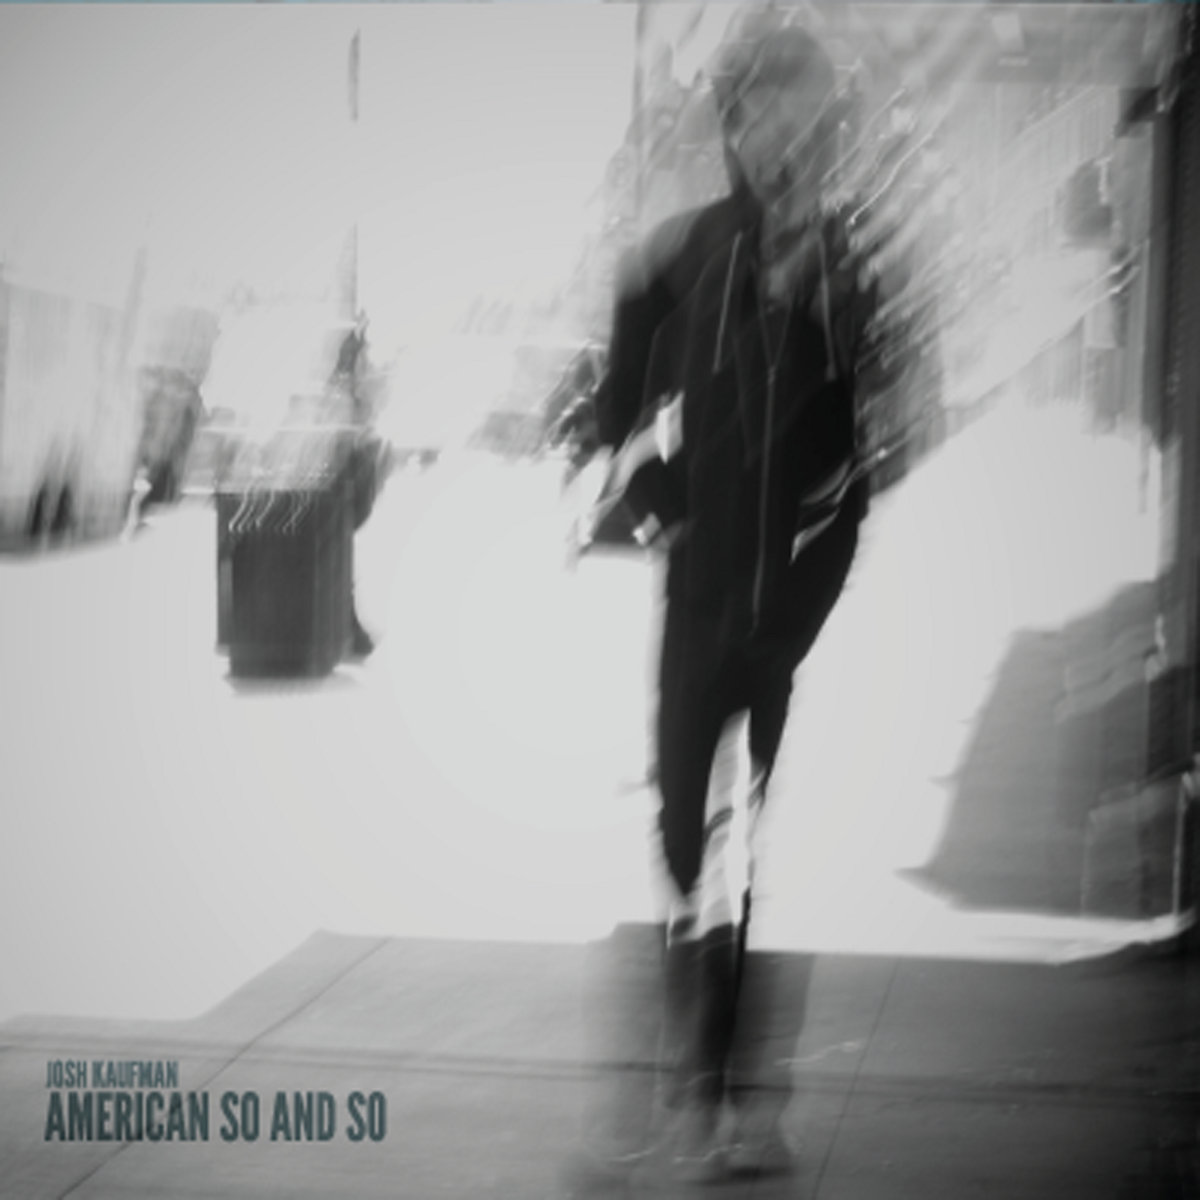 American So and So | Josh Kaufman